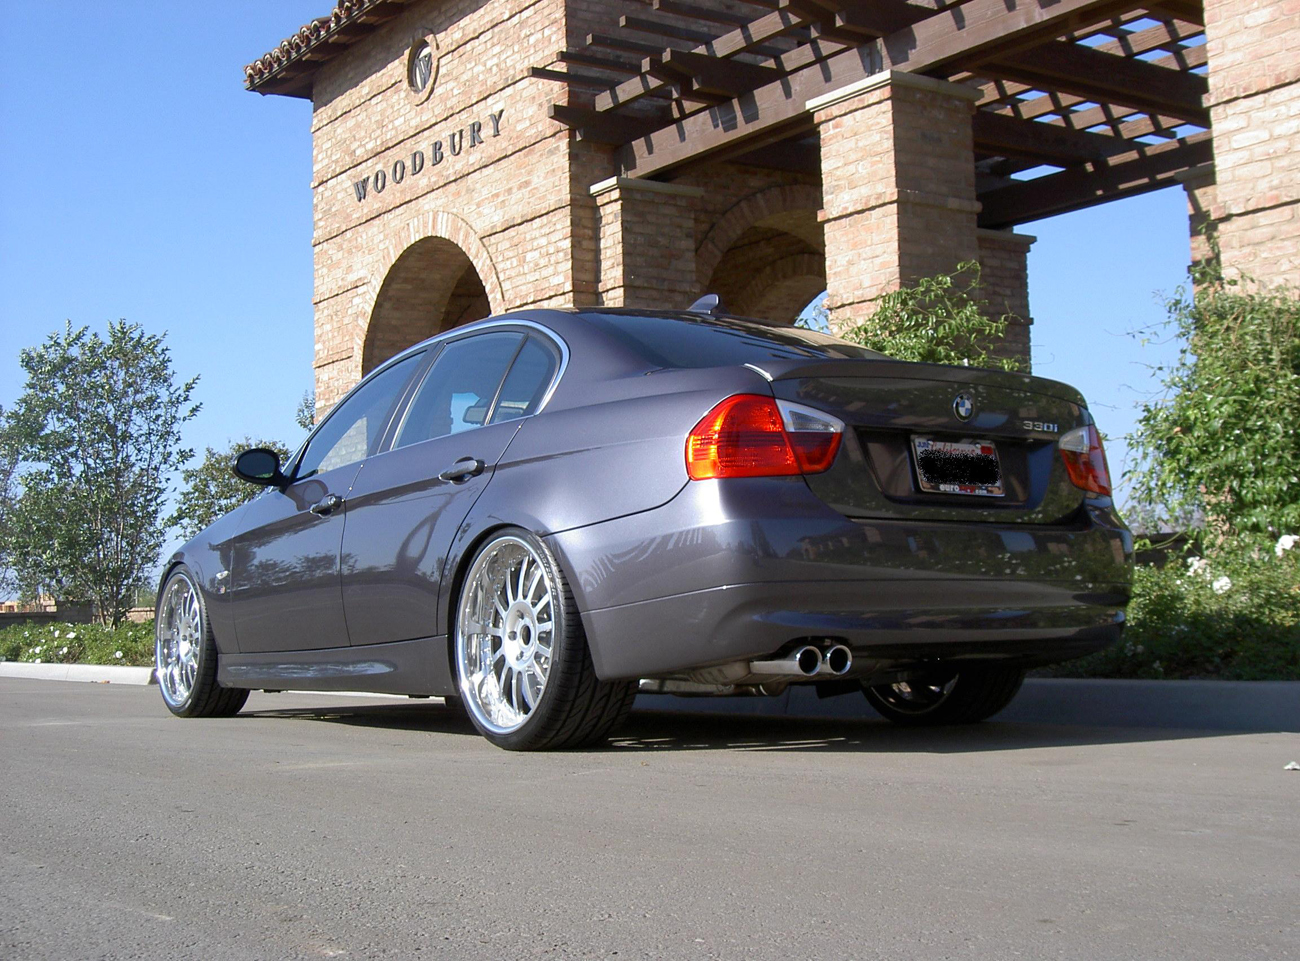 photo 4 BMW 330 custom wheels Agio13  20x8.5, ET , tire size 245/30 R20. 20x10.0 ET 285/25 R20